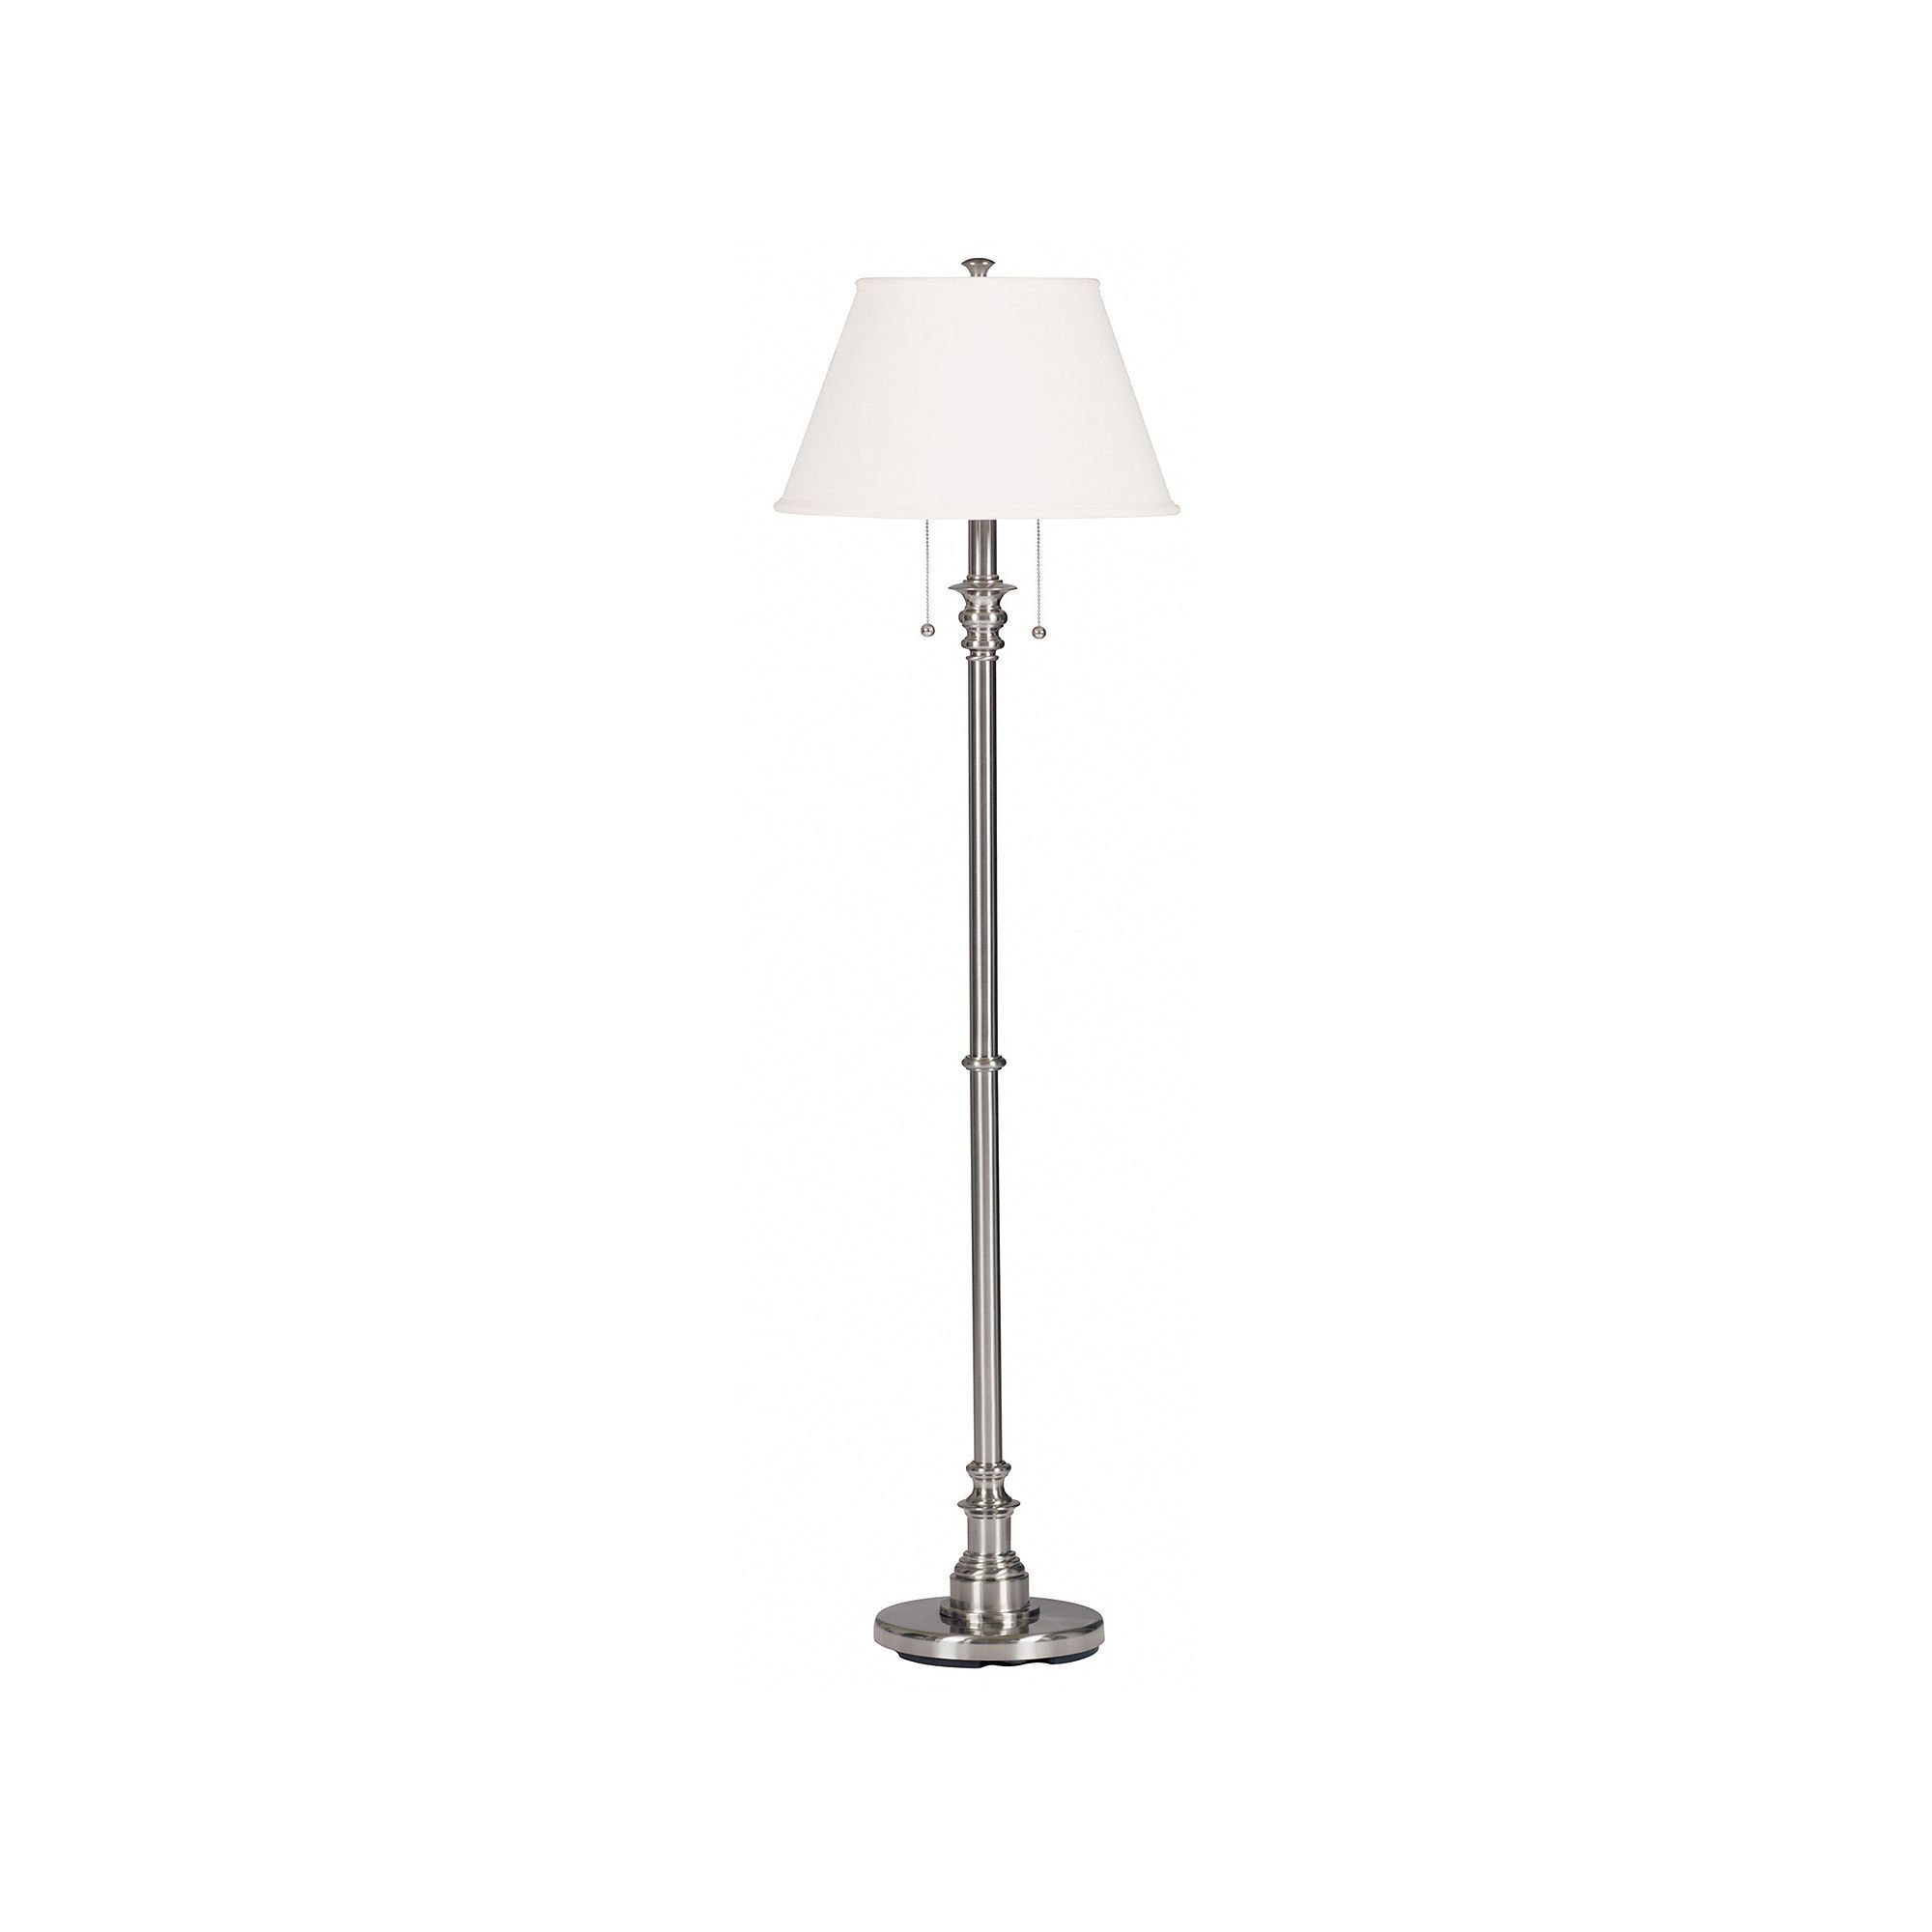 Kohls Floor Lamps Mesmerizing Kenroy Home Spyglass Floor Lamp  Floor Lamp Decorating Design